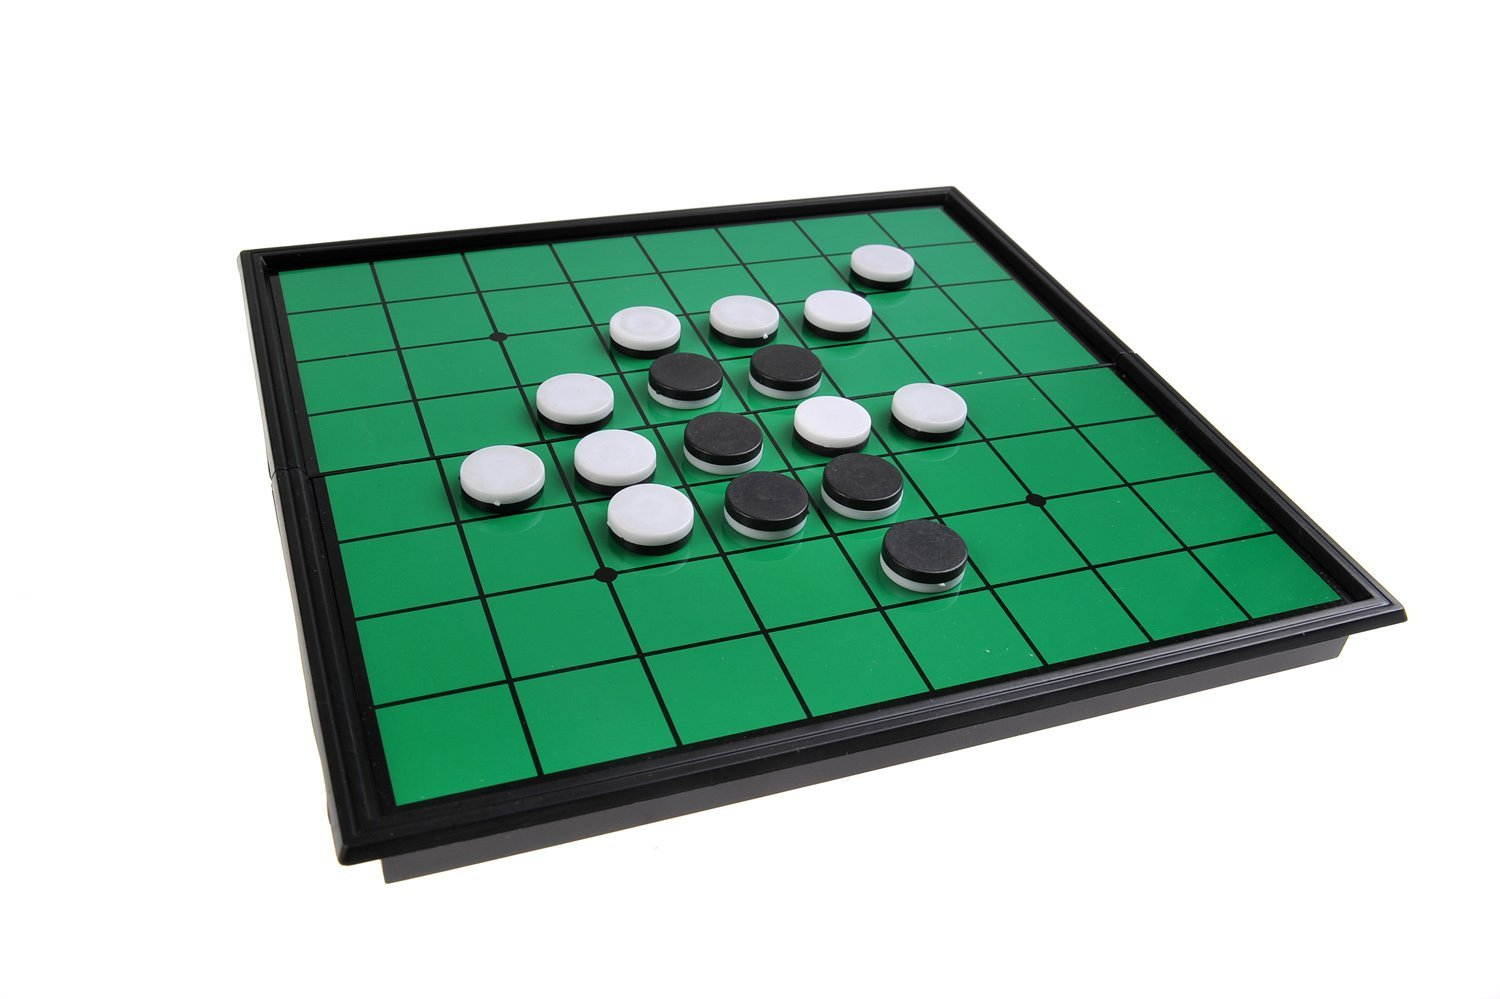 Quantum Abacus Magnetic Board Game (Travel Size): Oshello - Magnetic Game Pieces, Foldable Board 7.87 x 7.87 x 0.79 inches, Mod. SC54500 (DE) The Khan Outdoor & Lifestyle Company